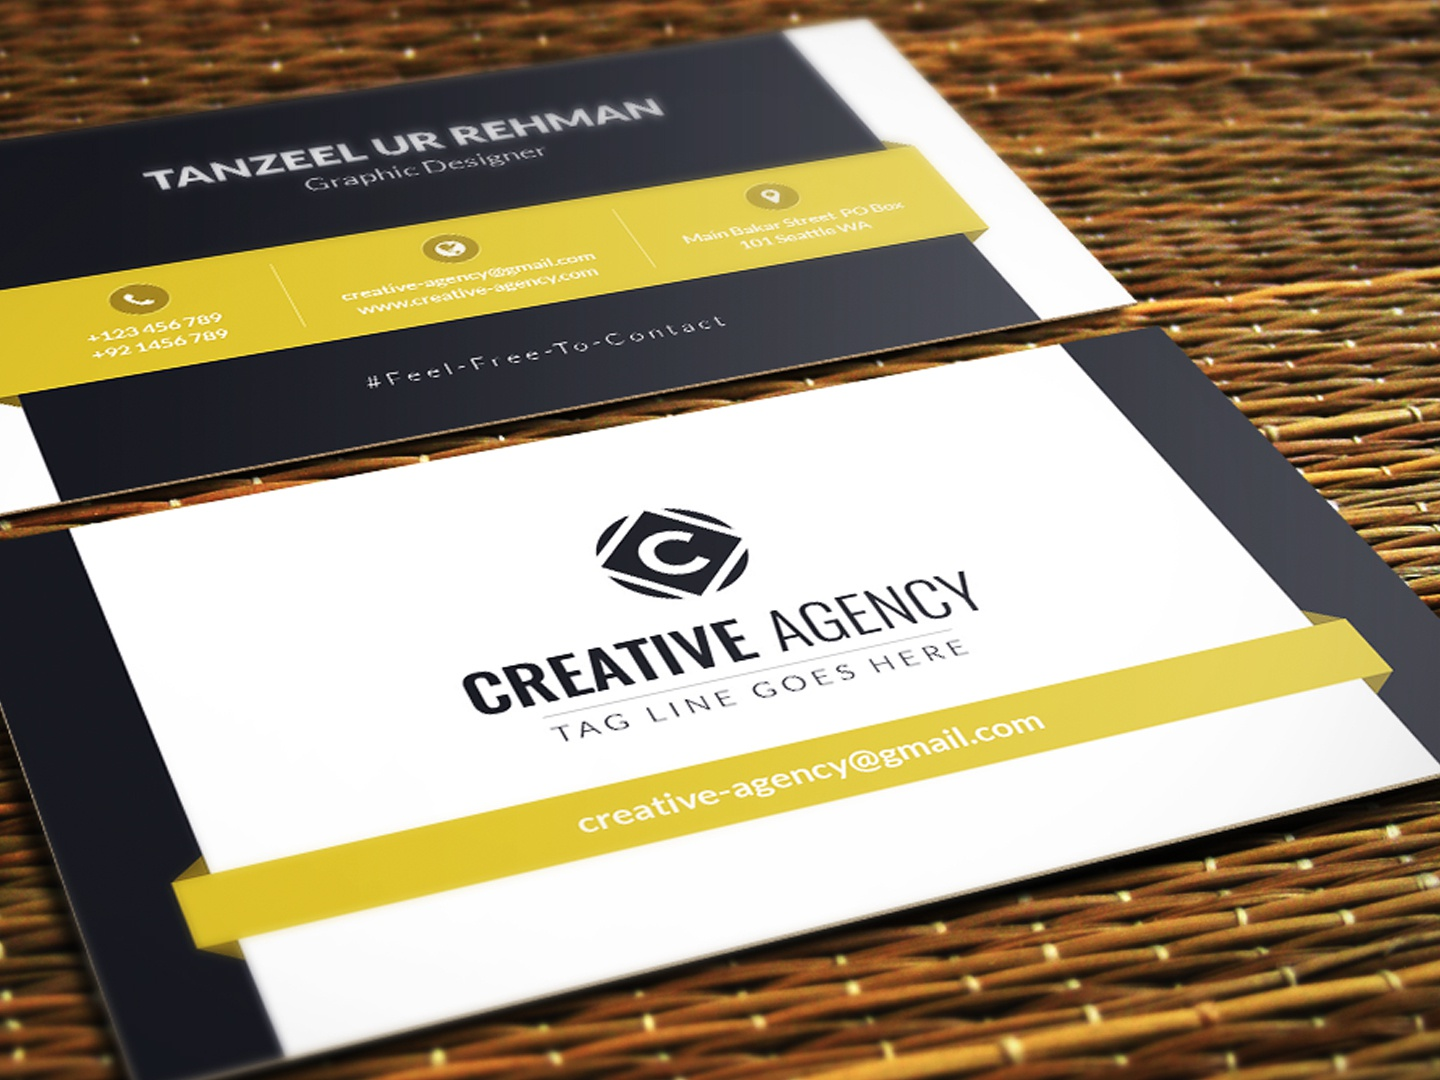 Business Cards Template Free Download By Tanzeel Ur Rehman